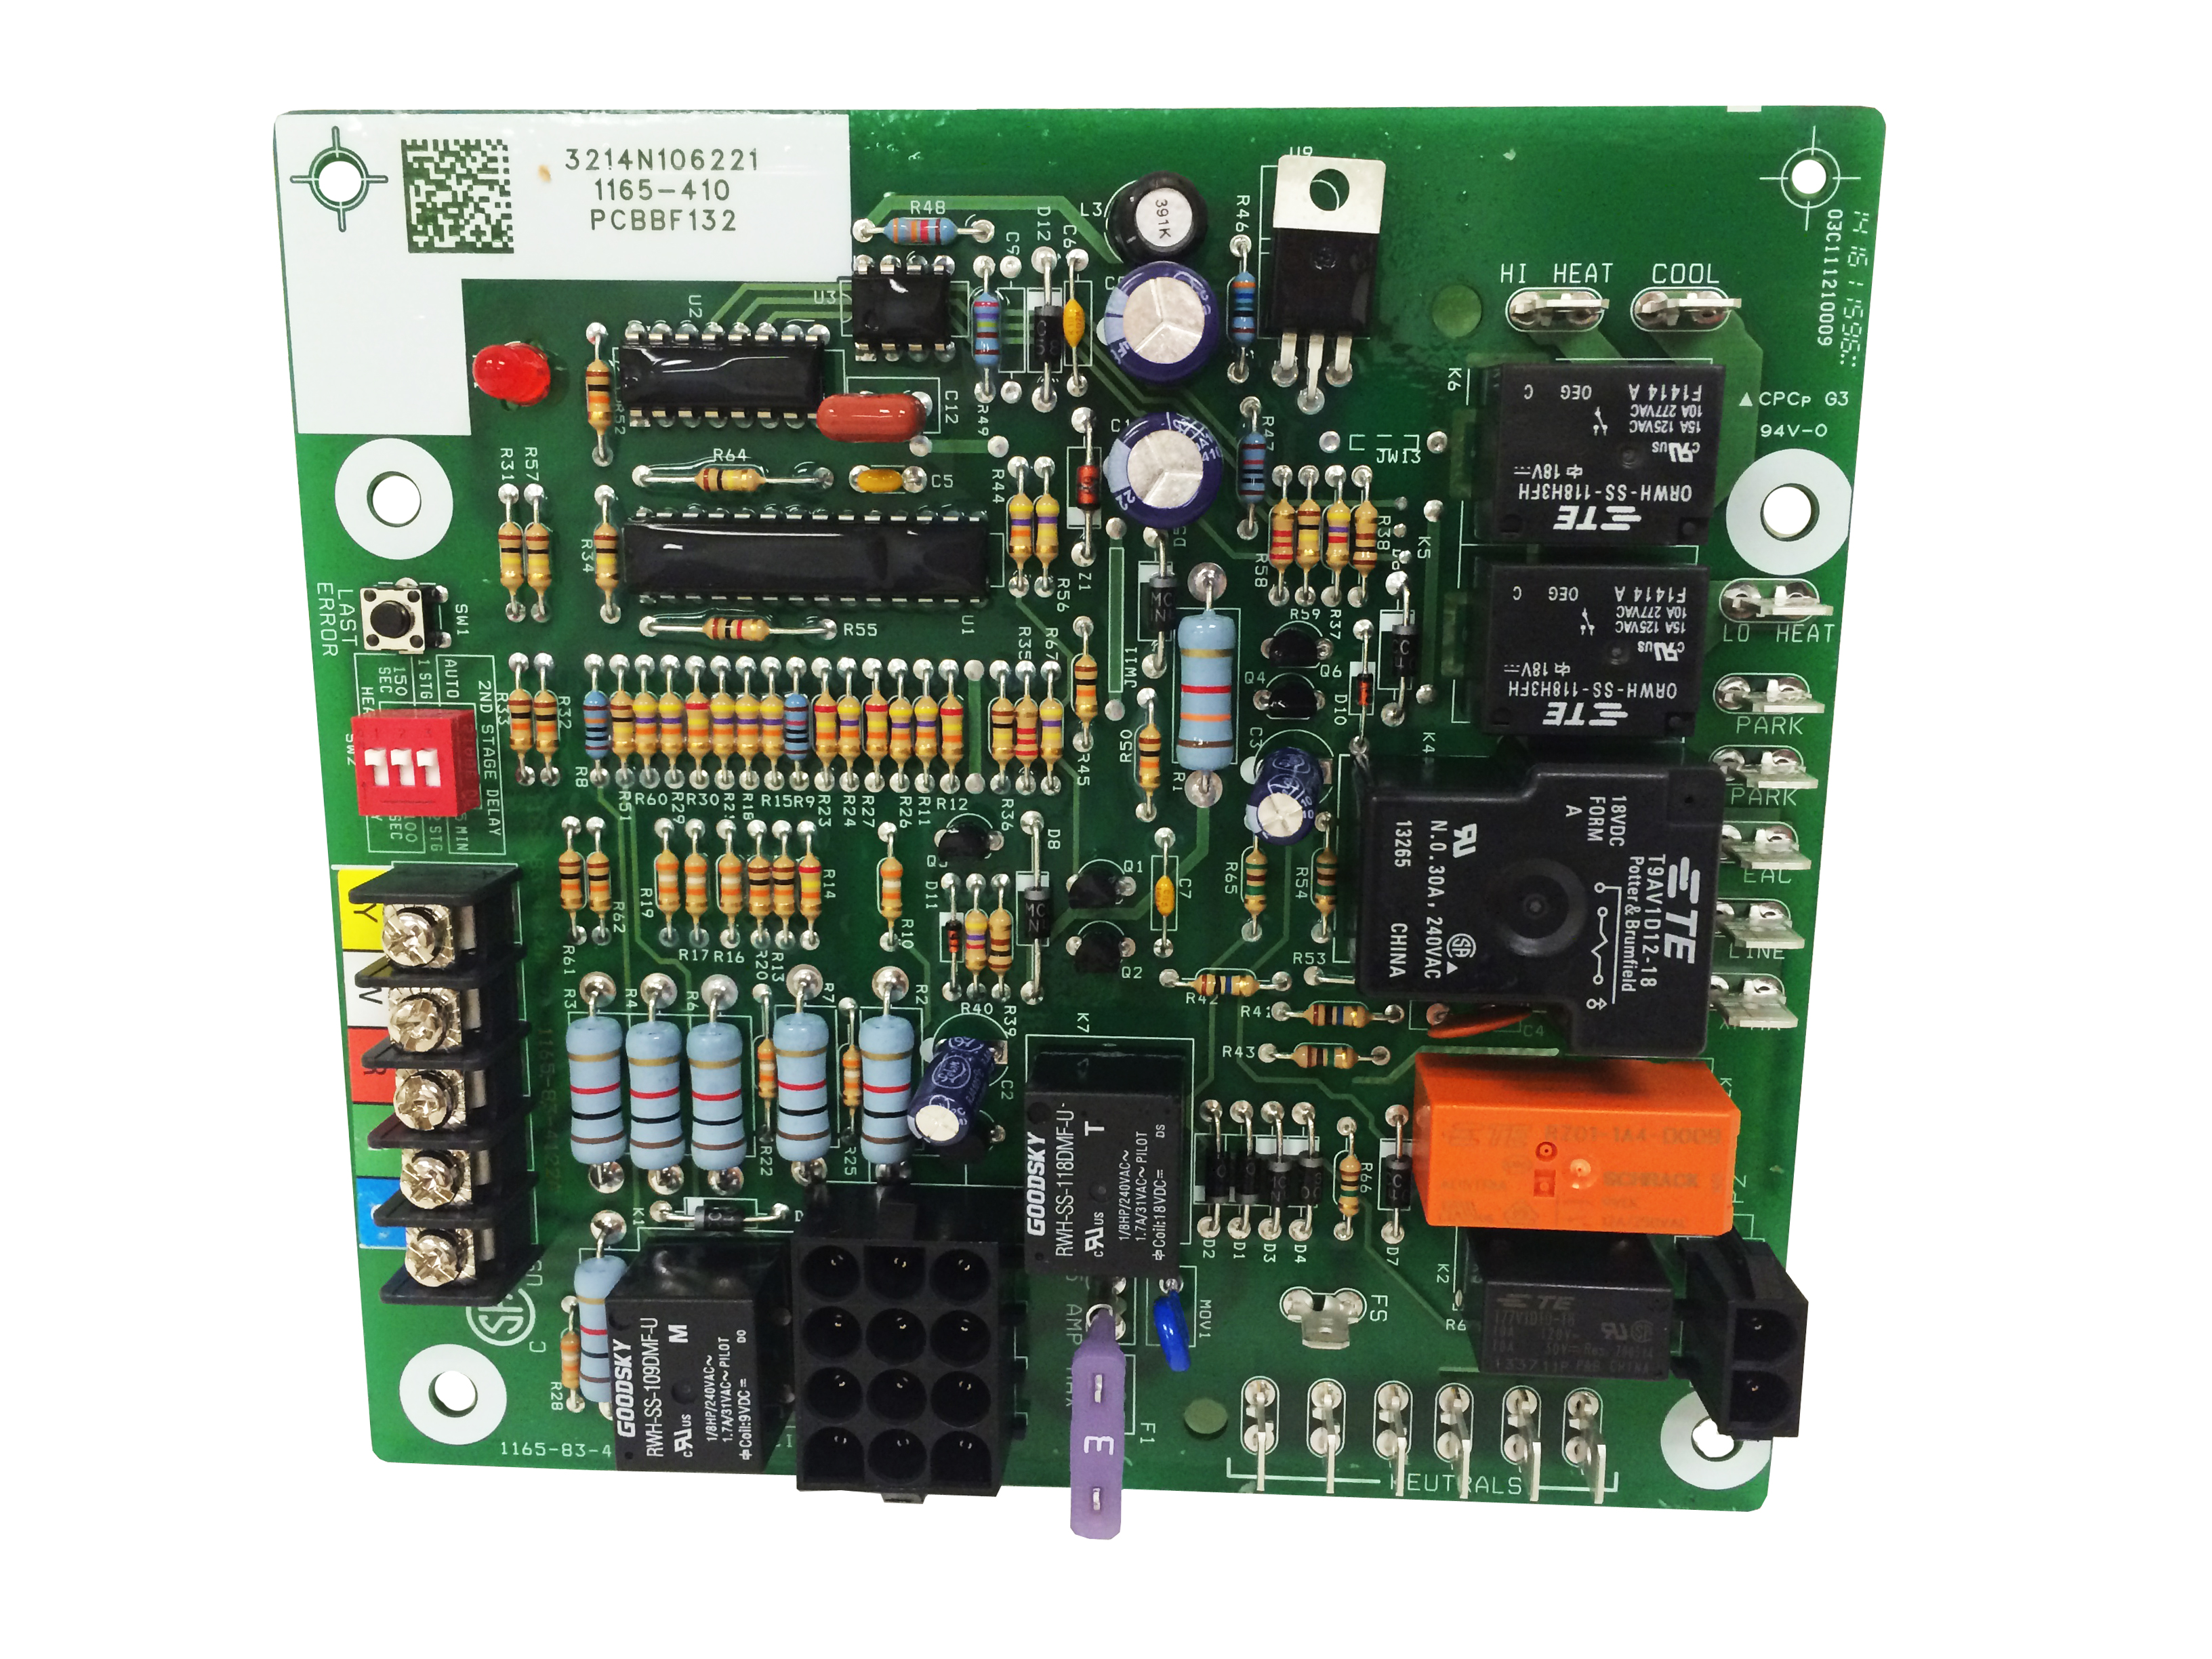 Goodman Ignition Control Board Hsi Int 2 Stage (Pcbbf132S)